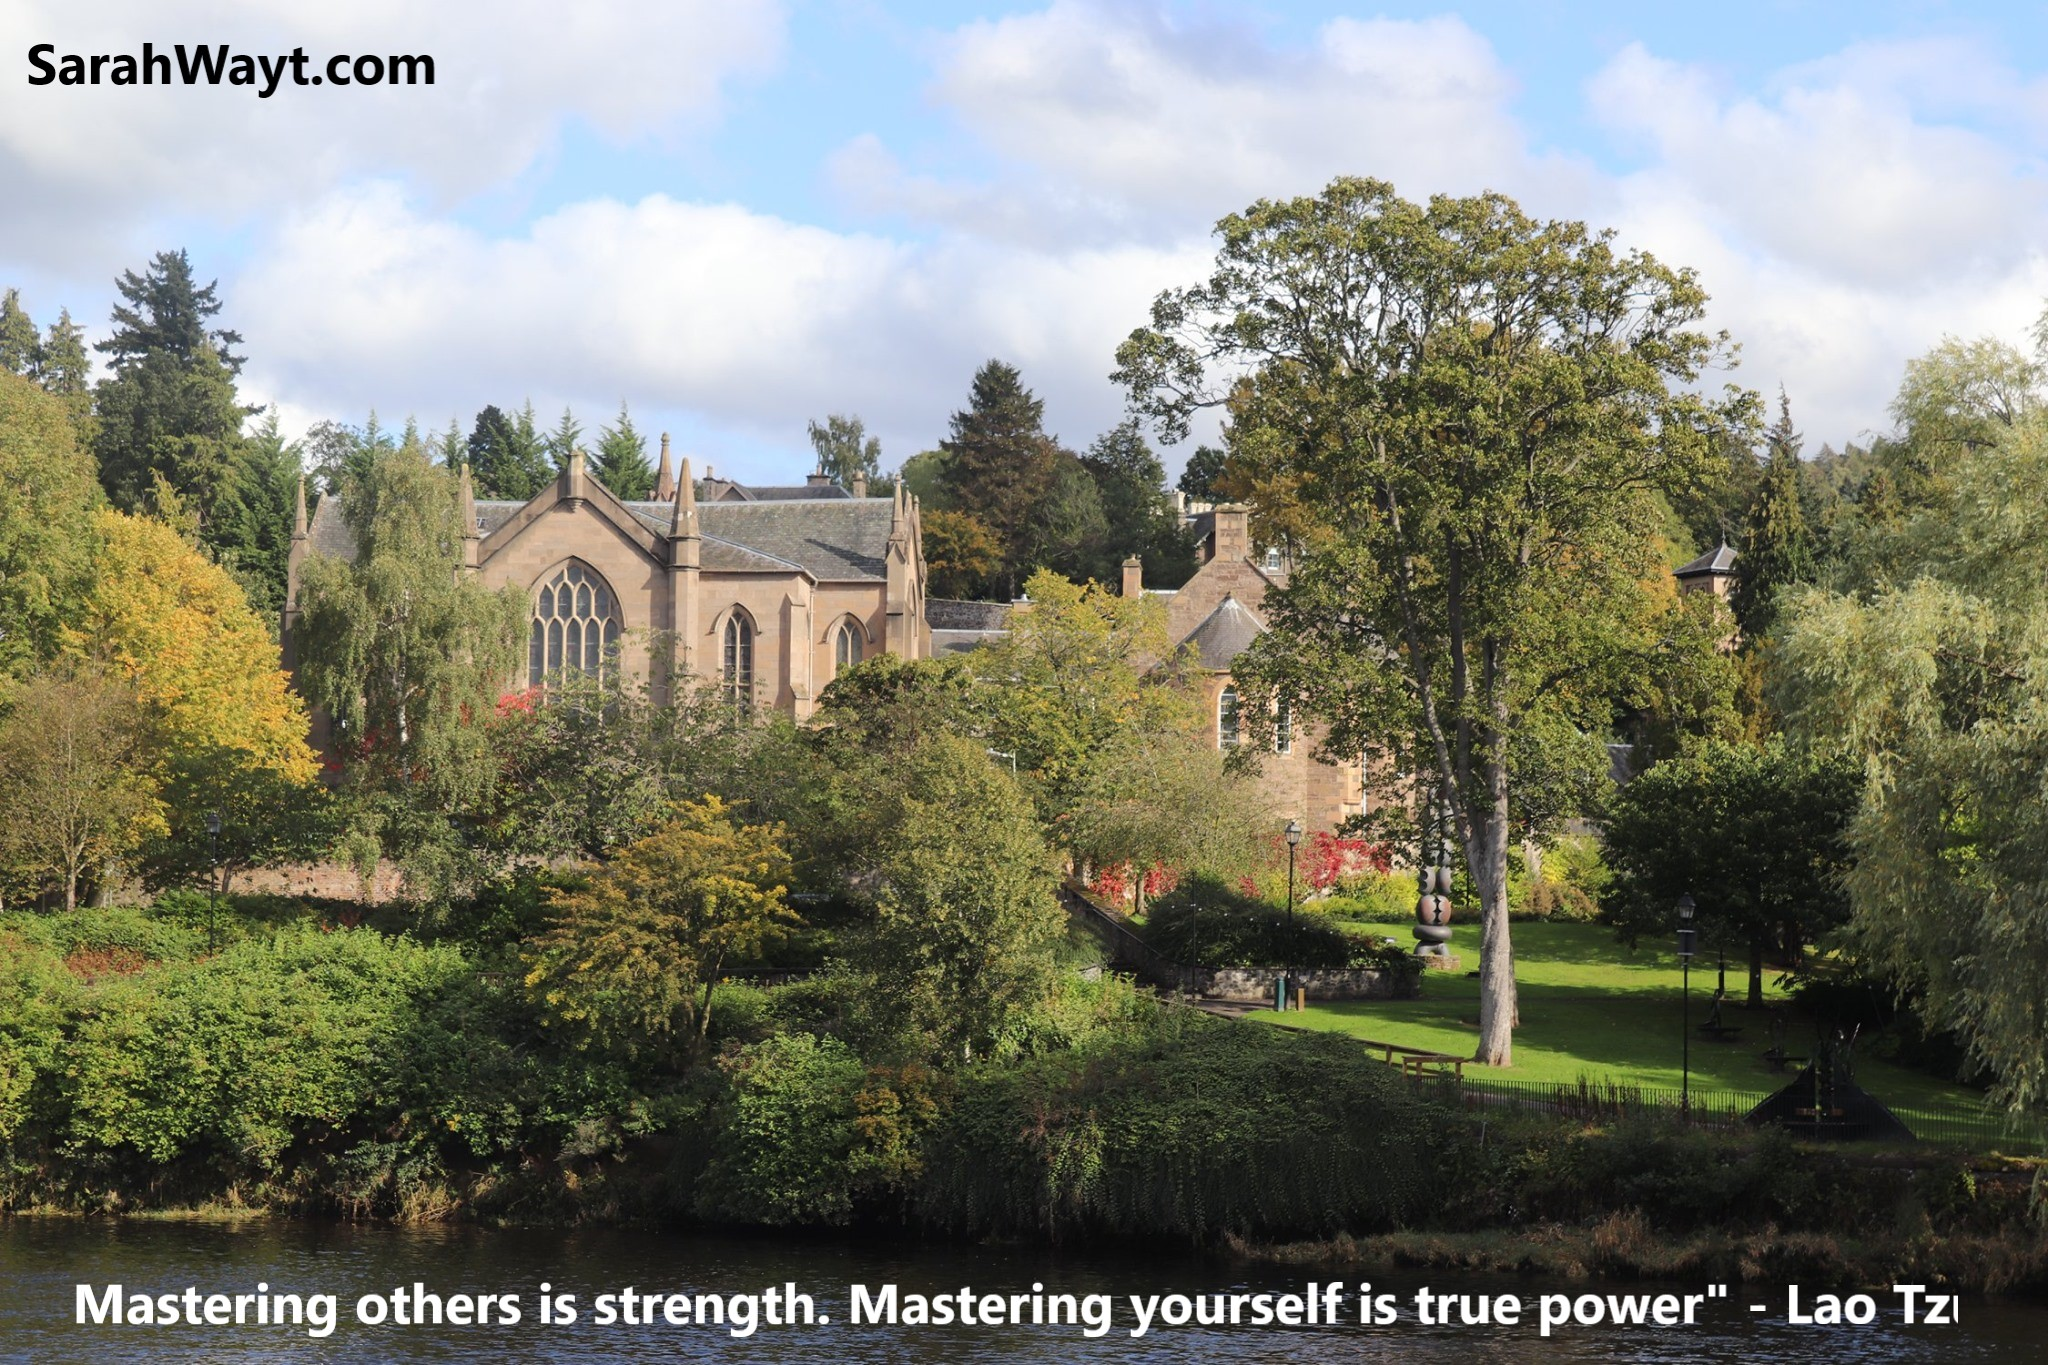 mastering others is strength. mastering yourself is true power lao tzu